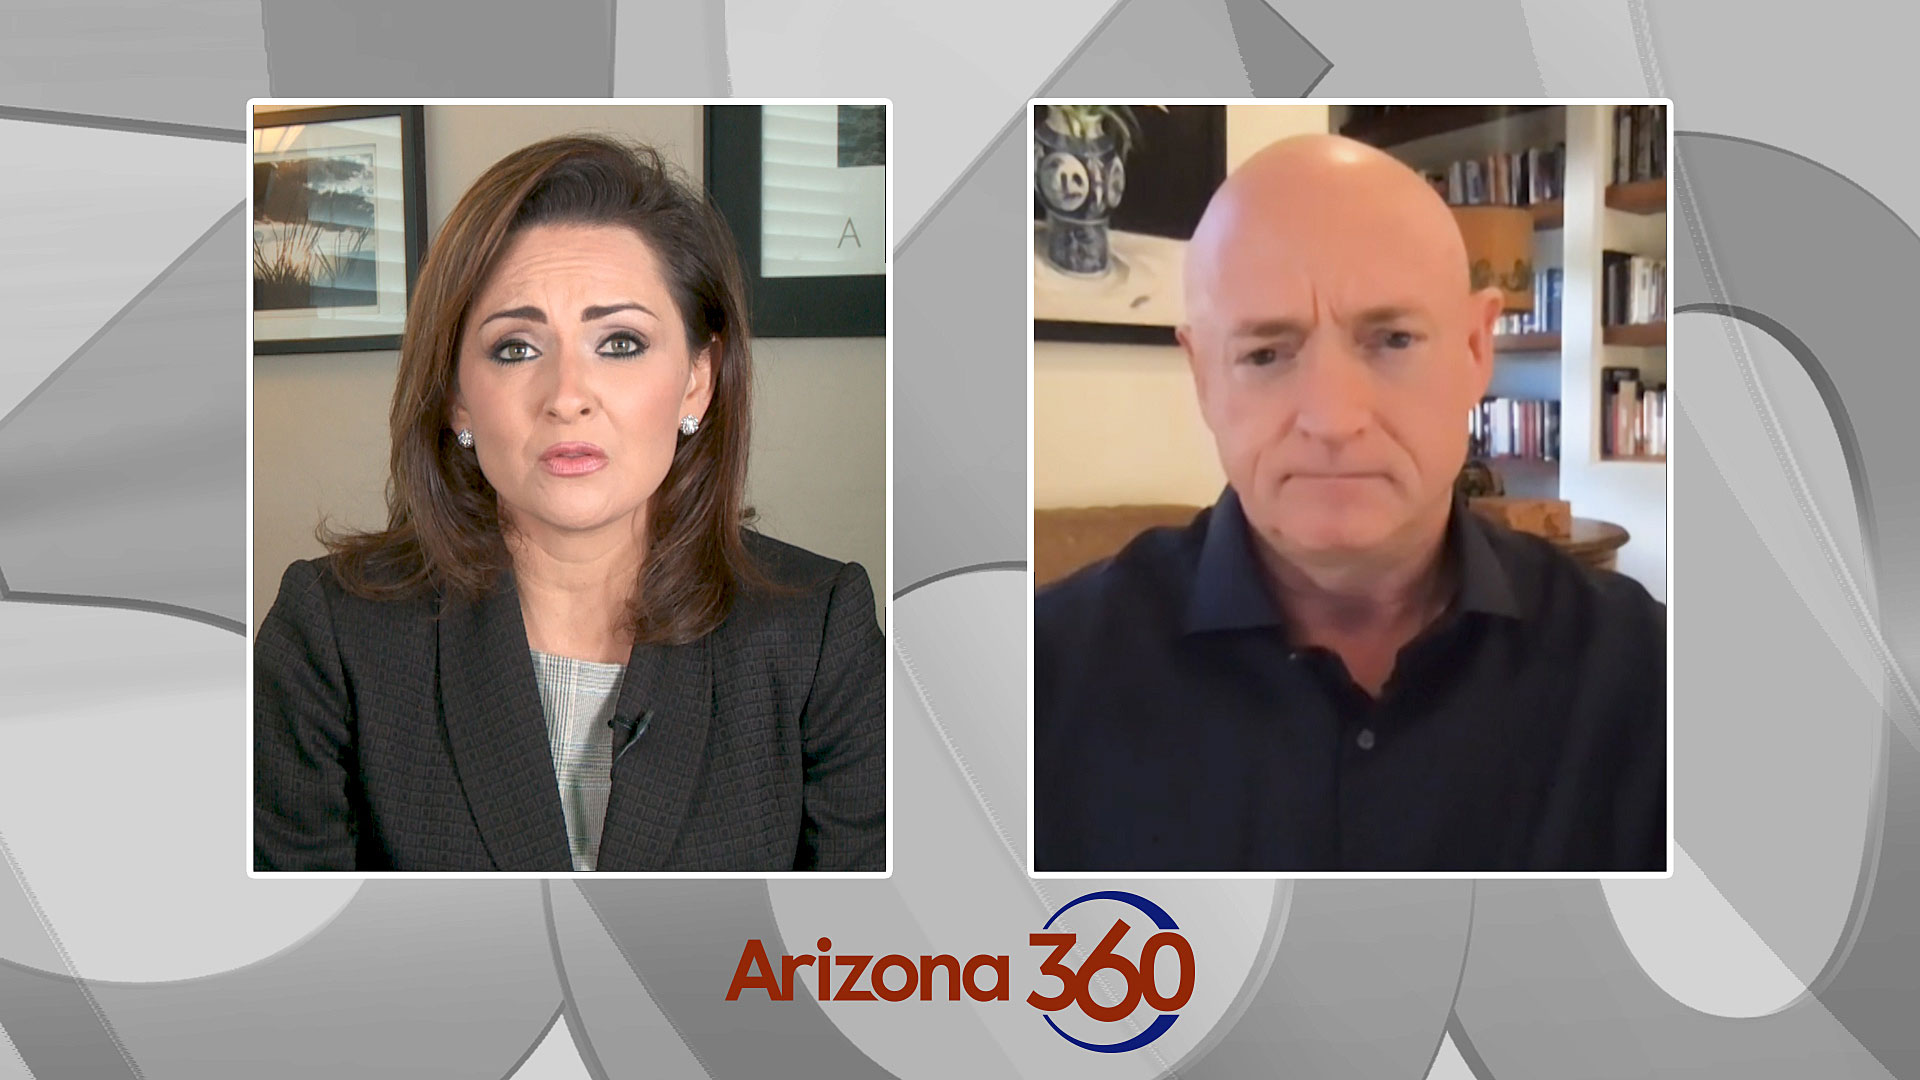 Arizona 360 host Lorraine Rivera interviews Democratic Senate candidate Mark Kelly on Sept. 29, 2020.